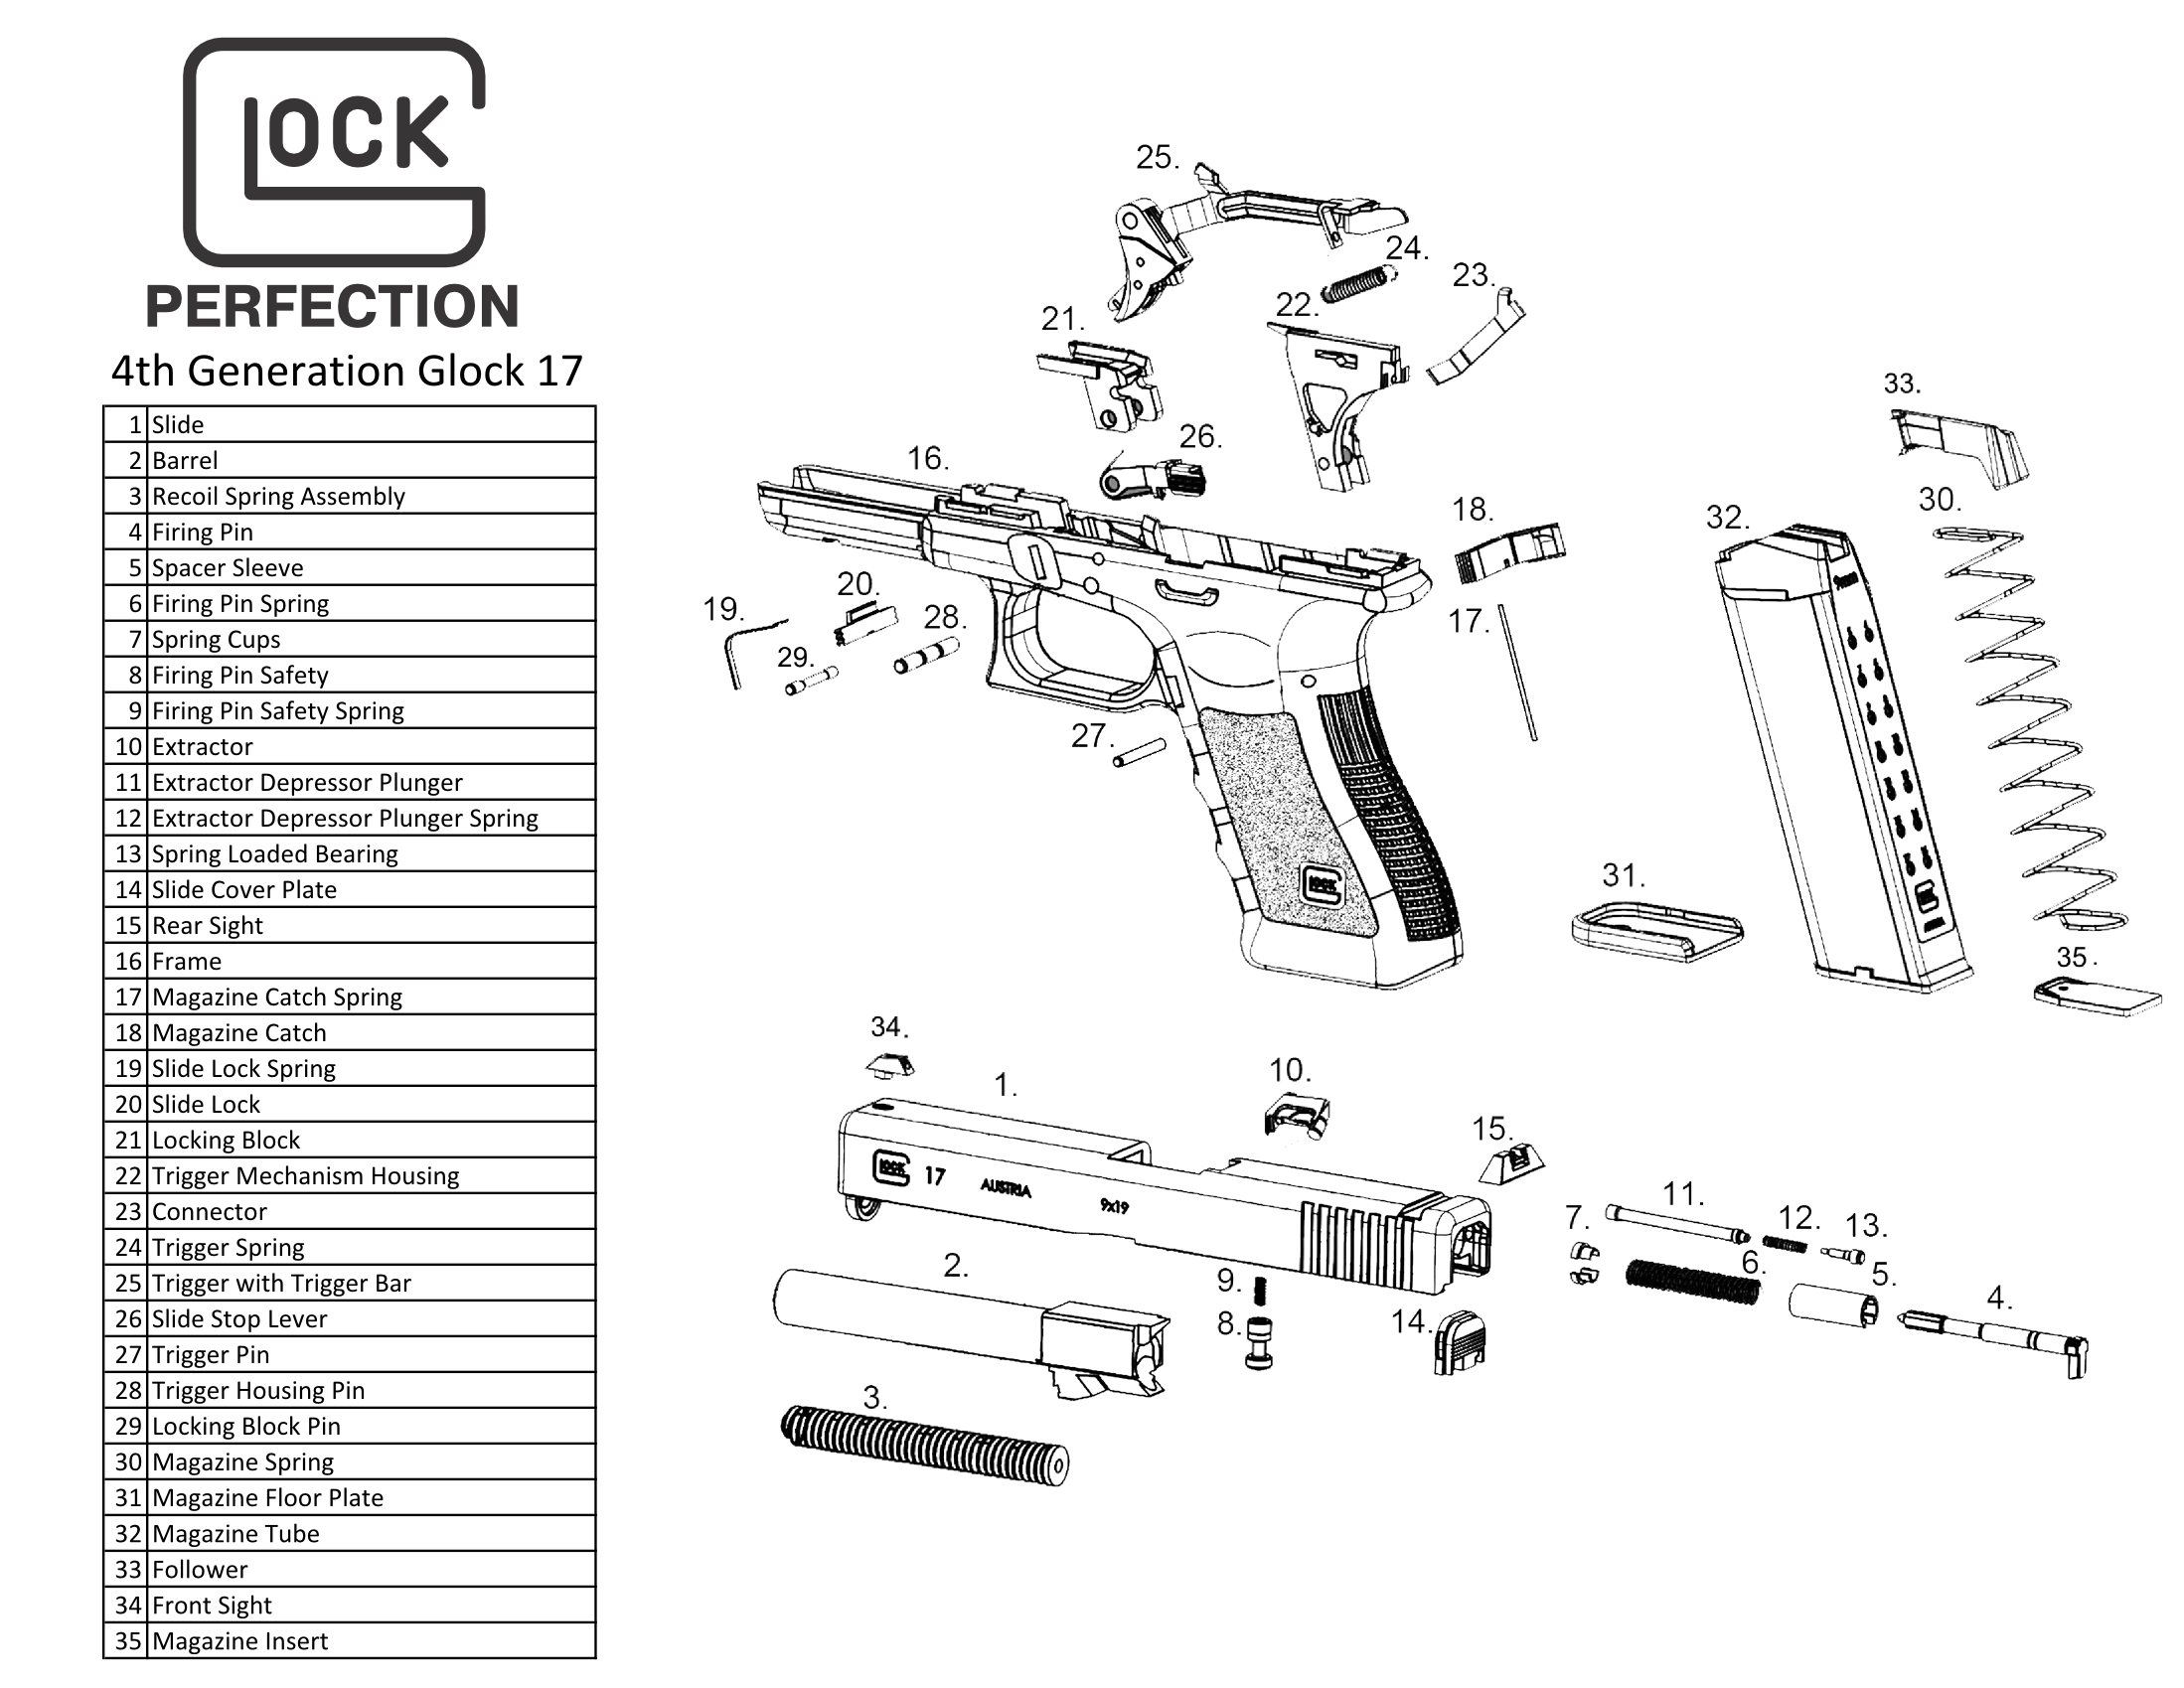 Kimber 1911 Trigger Schematic Not Lossing Wiring Diagram Parts Model Glock 17 4th Generation Exploded View Pistols Push Rod